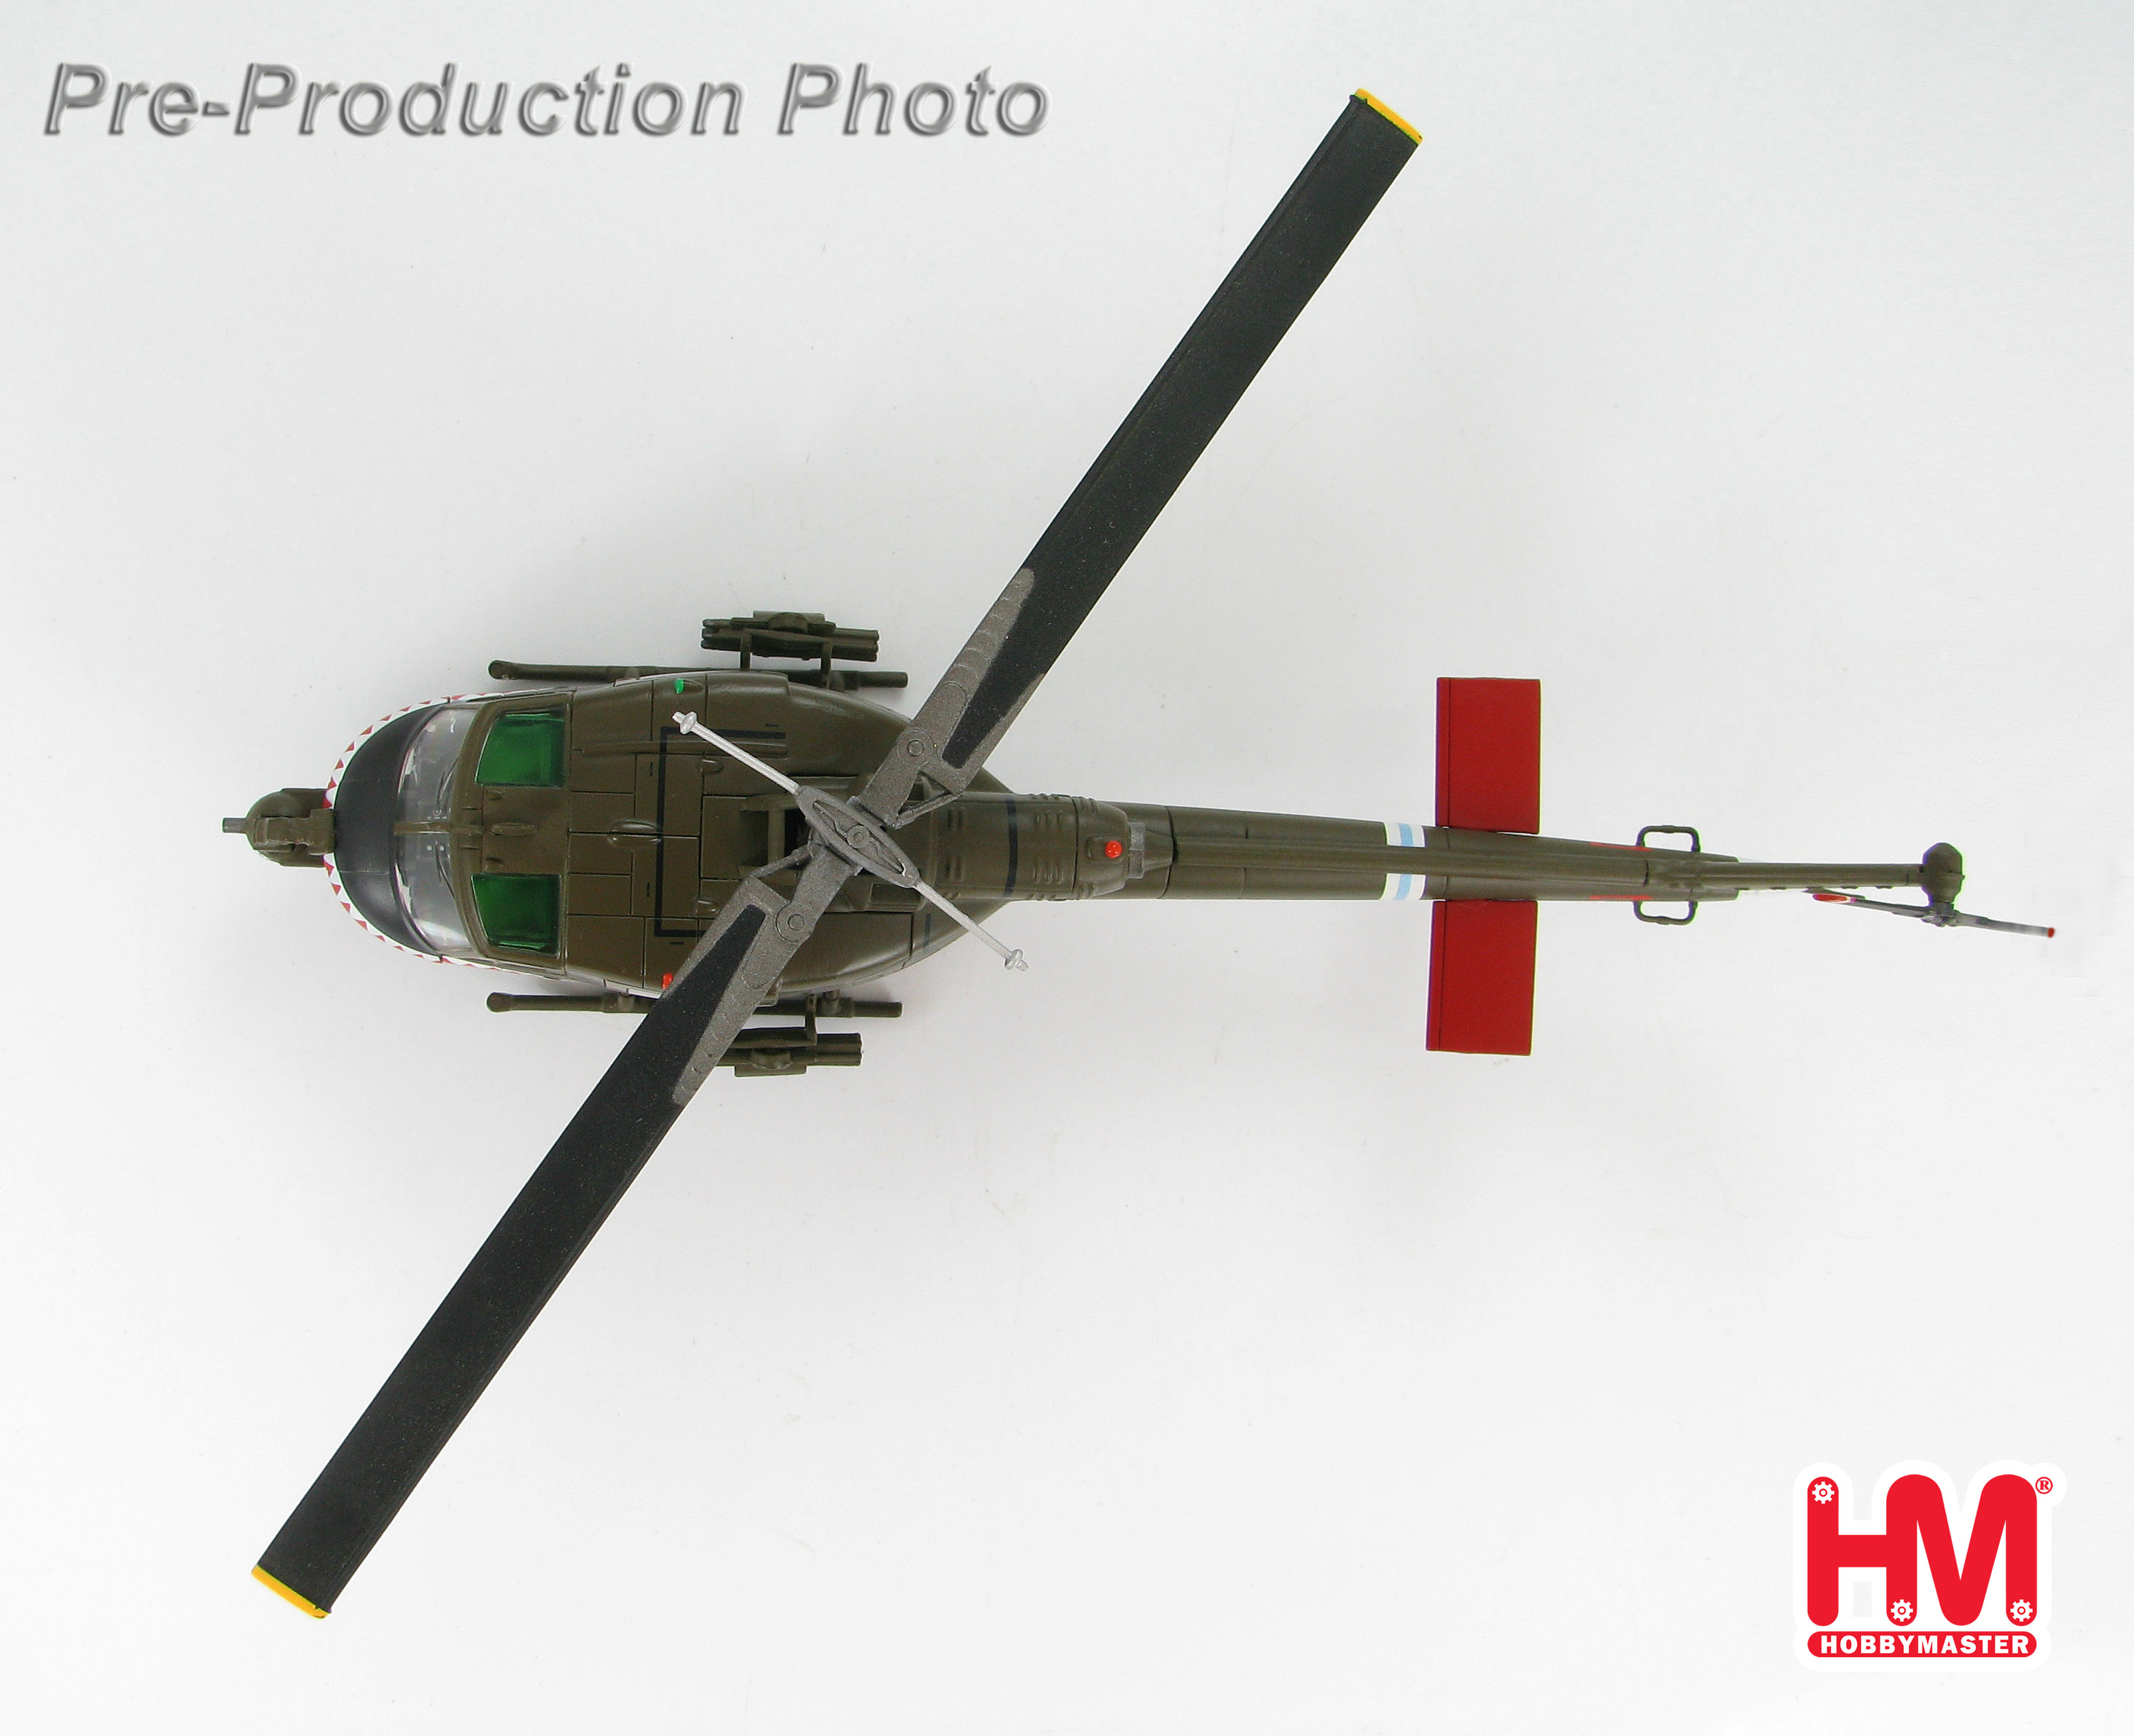 174th ahc vietnam - Hobby Master Air Power Series 1 72 Helicopter Hh1009 Bell Uh 1c Huey Frog Shark Gunship 66 15161 174th Ahc 1st Aviation Brigade Ii Corps Vietnam 1971